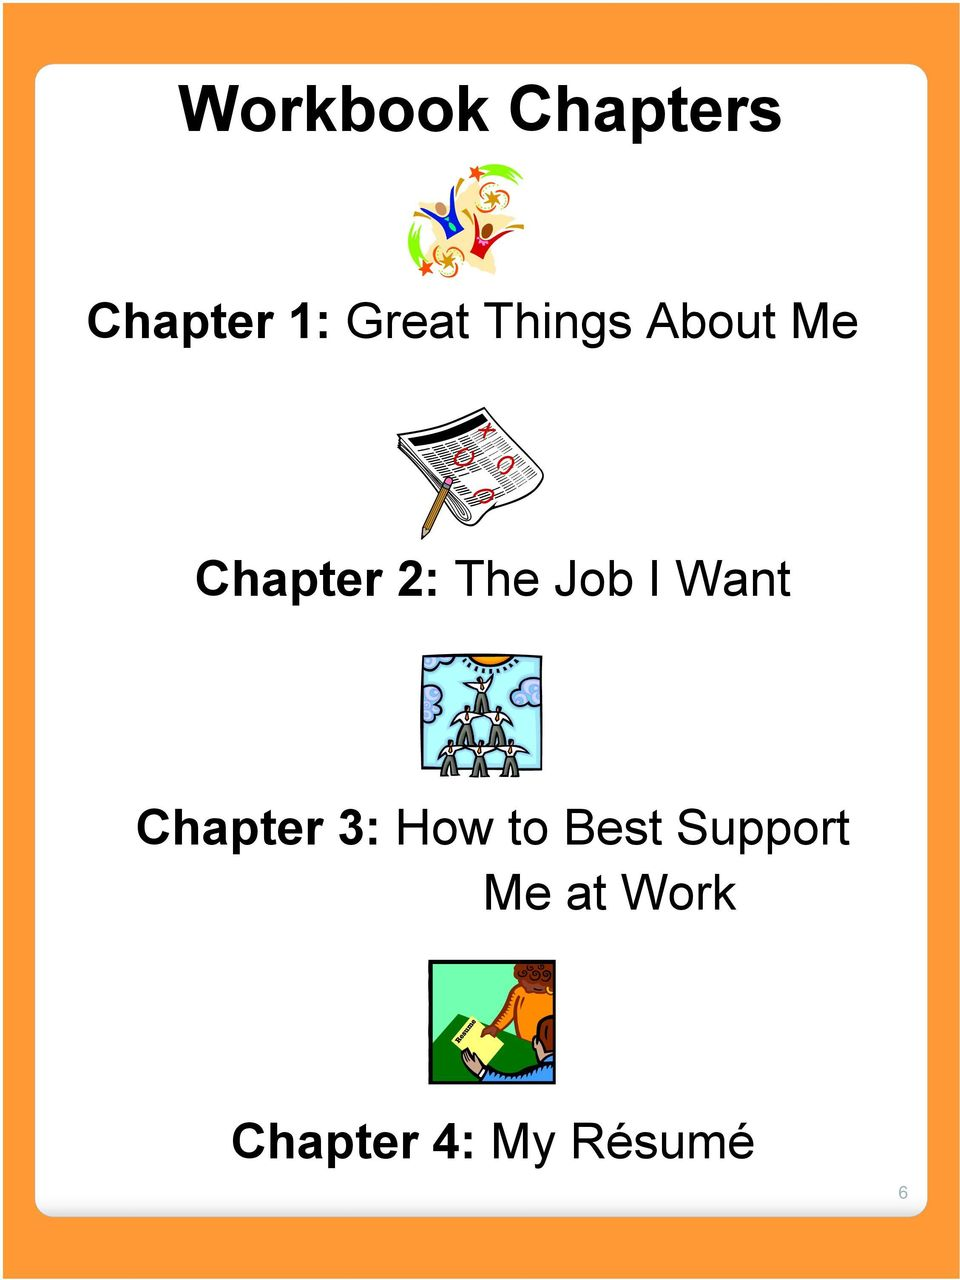 I Want Chapter 3: How to Best